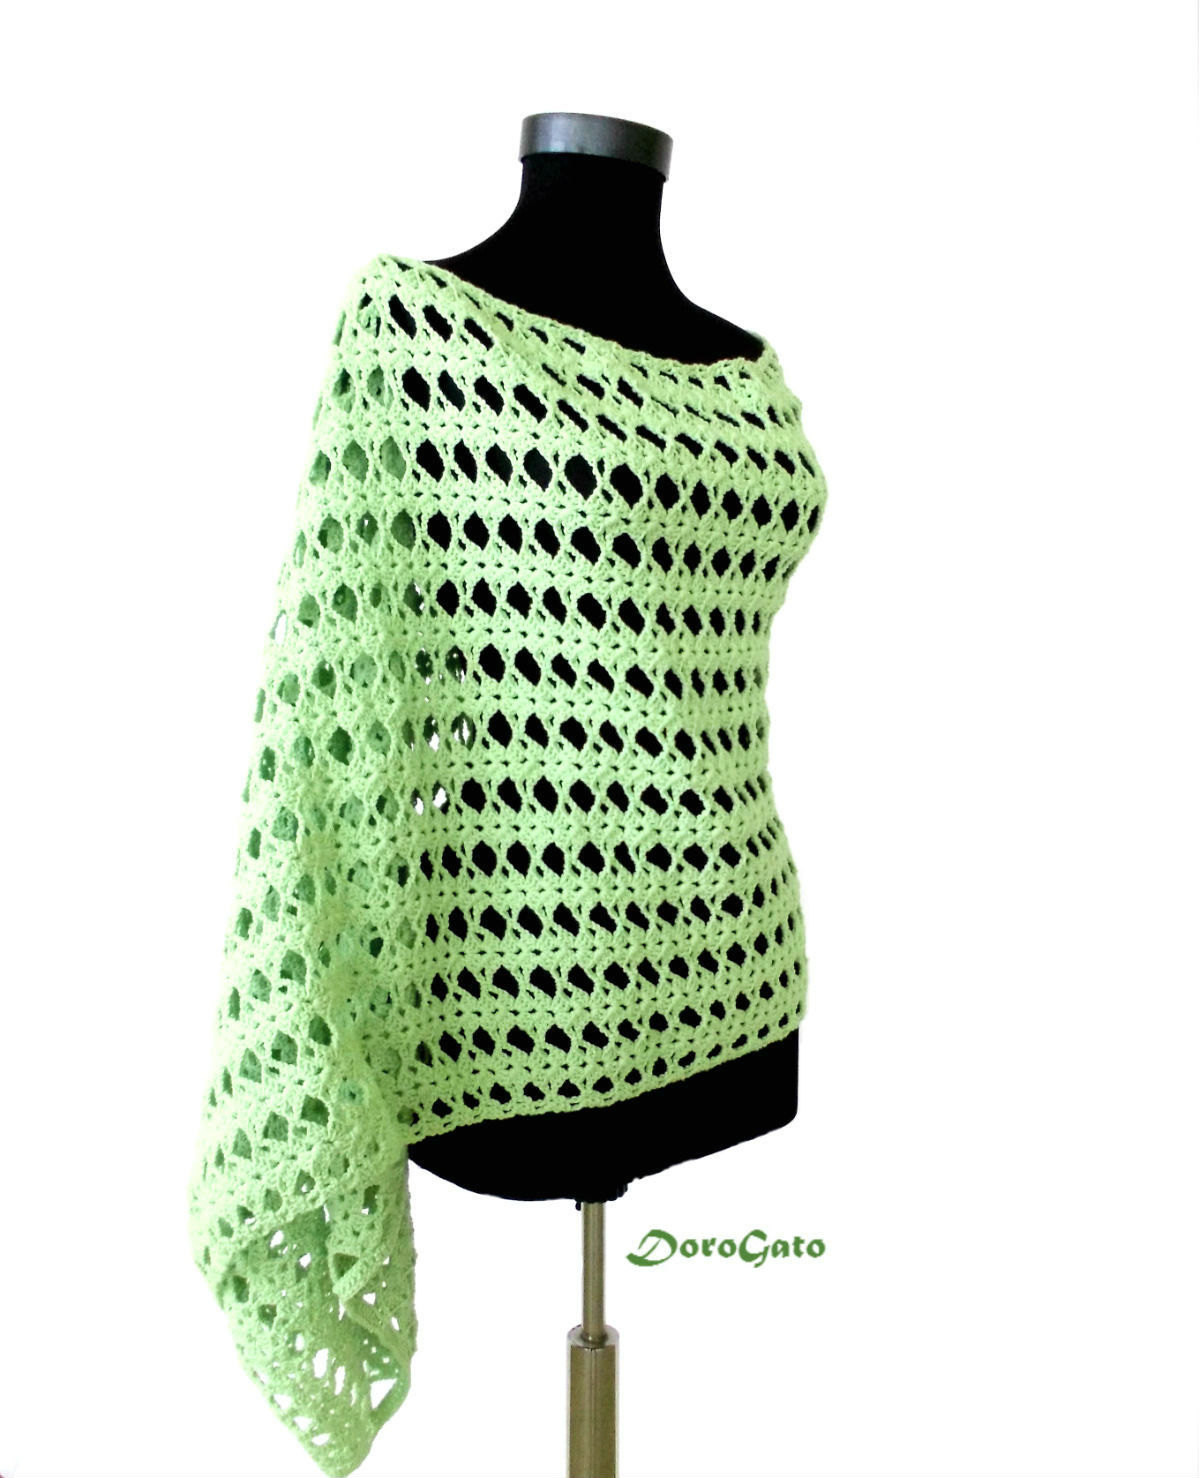 Crochet Shawl Pattern for Beginners Unique Easy Crochet Shawl Pattern Beginner Crochet Pattern Shawl Of Innovative 47 Images Crochet Shawl Pattern for Beginners